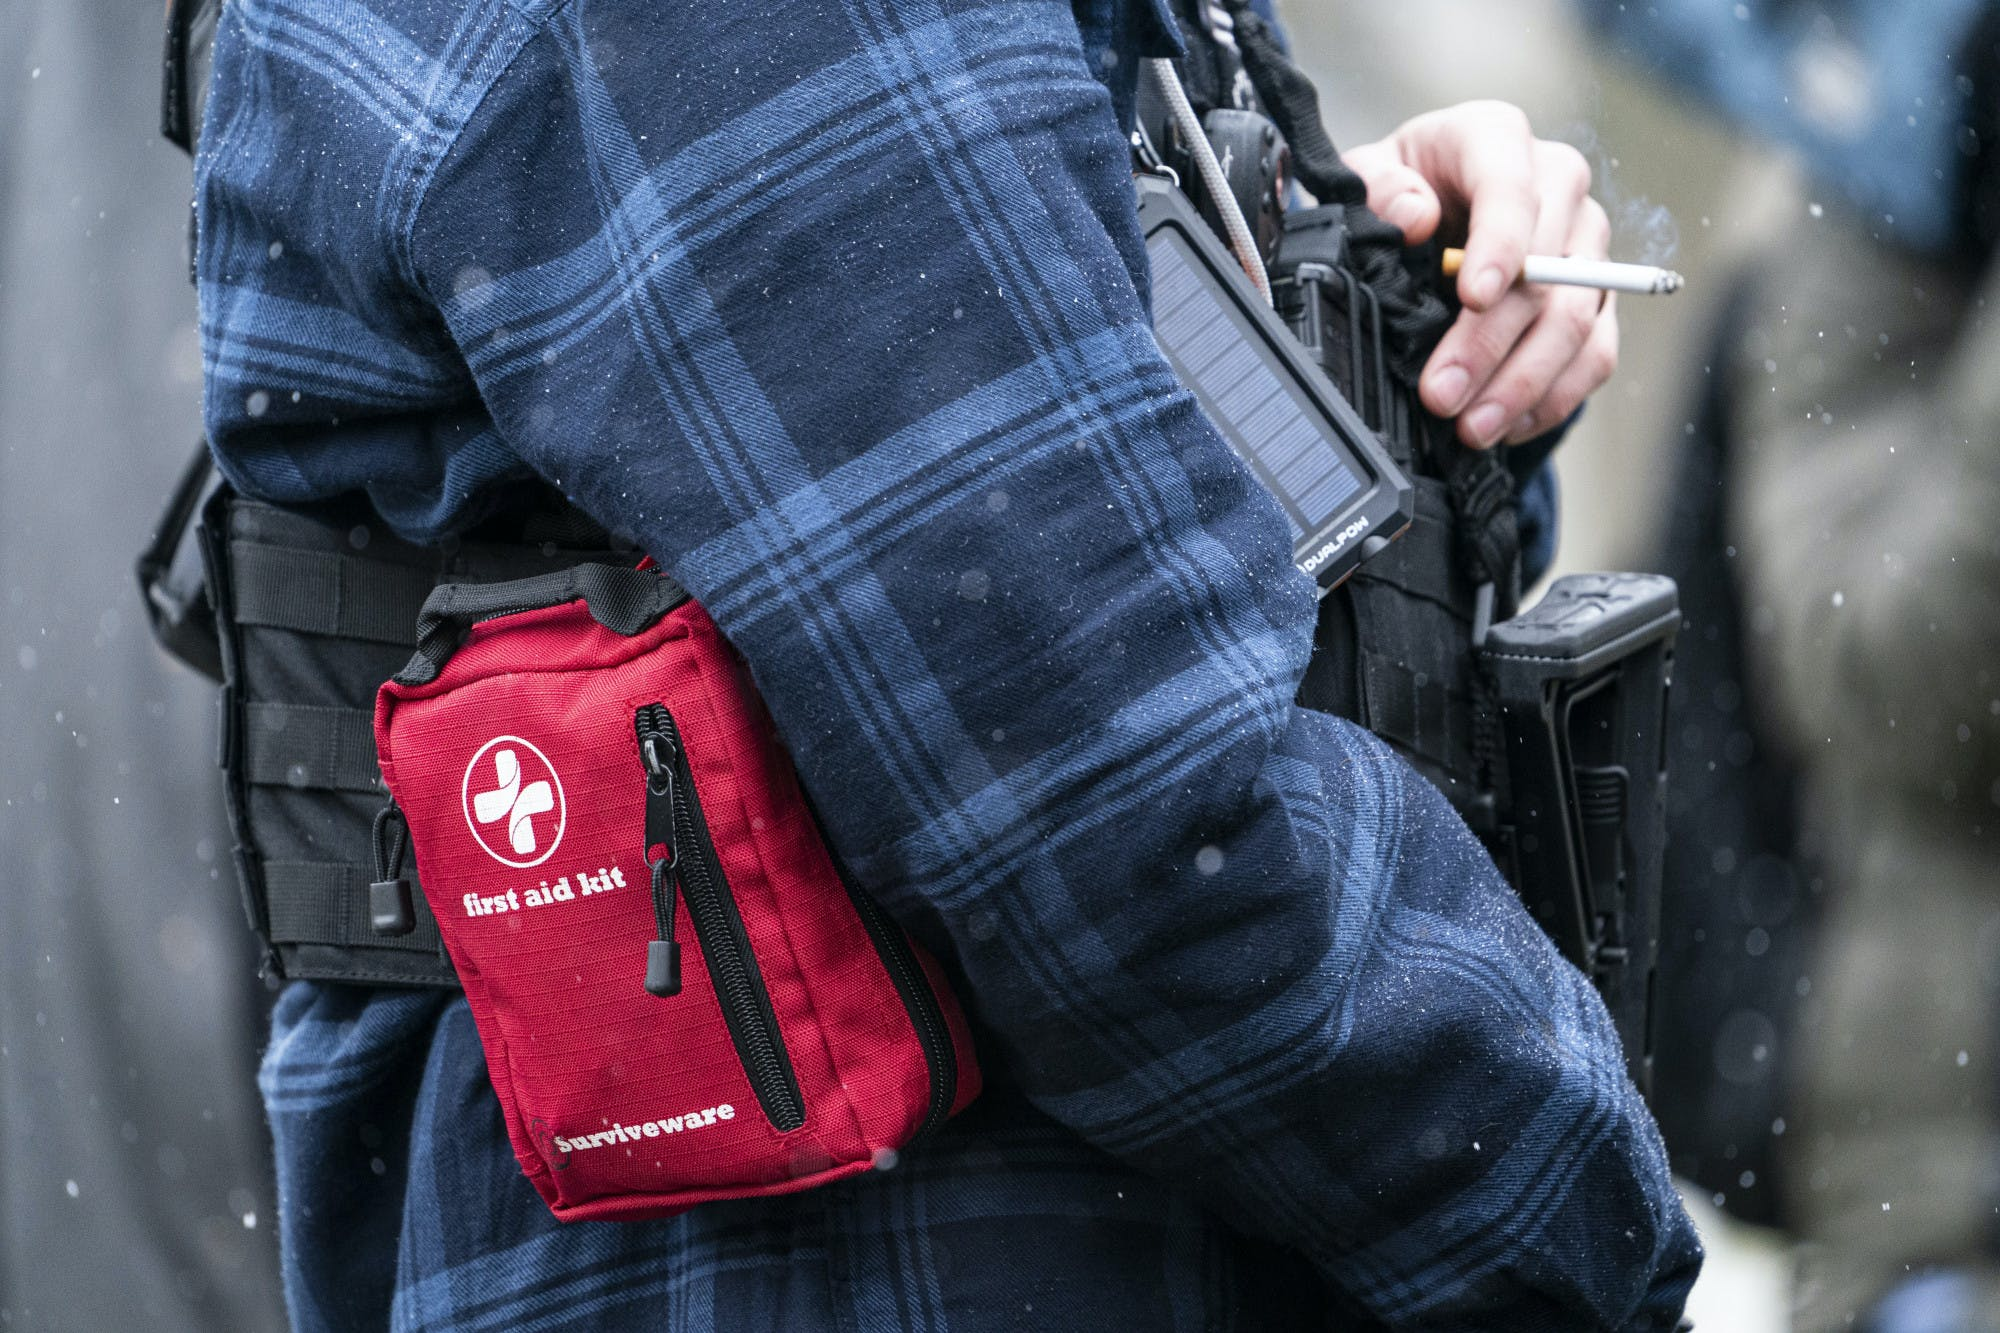 A person armed with a gun and first aid kit smokes a cigarette.